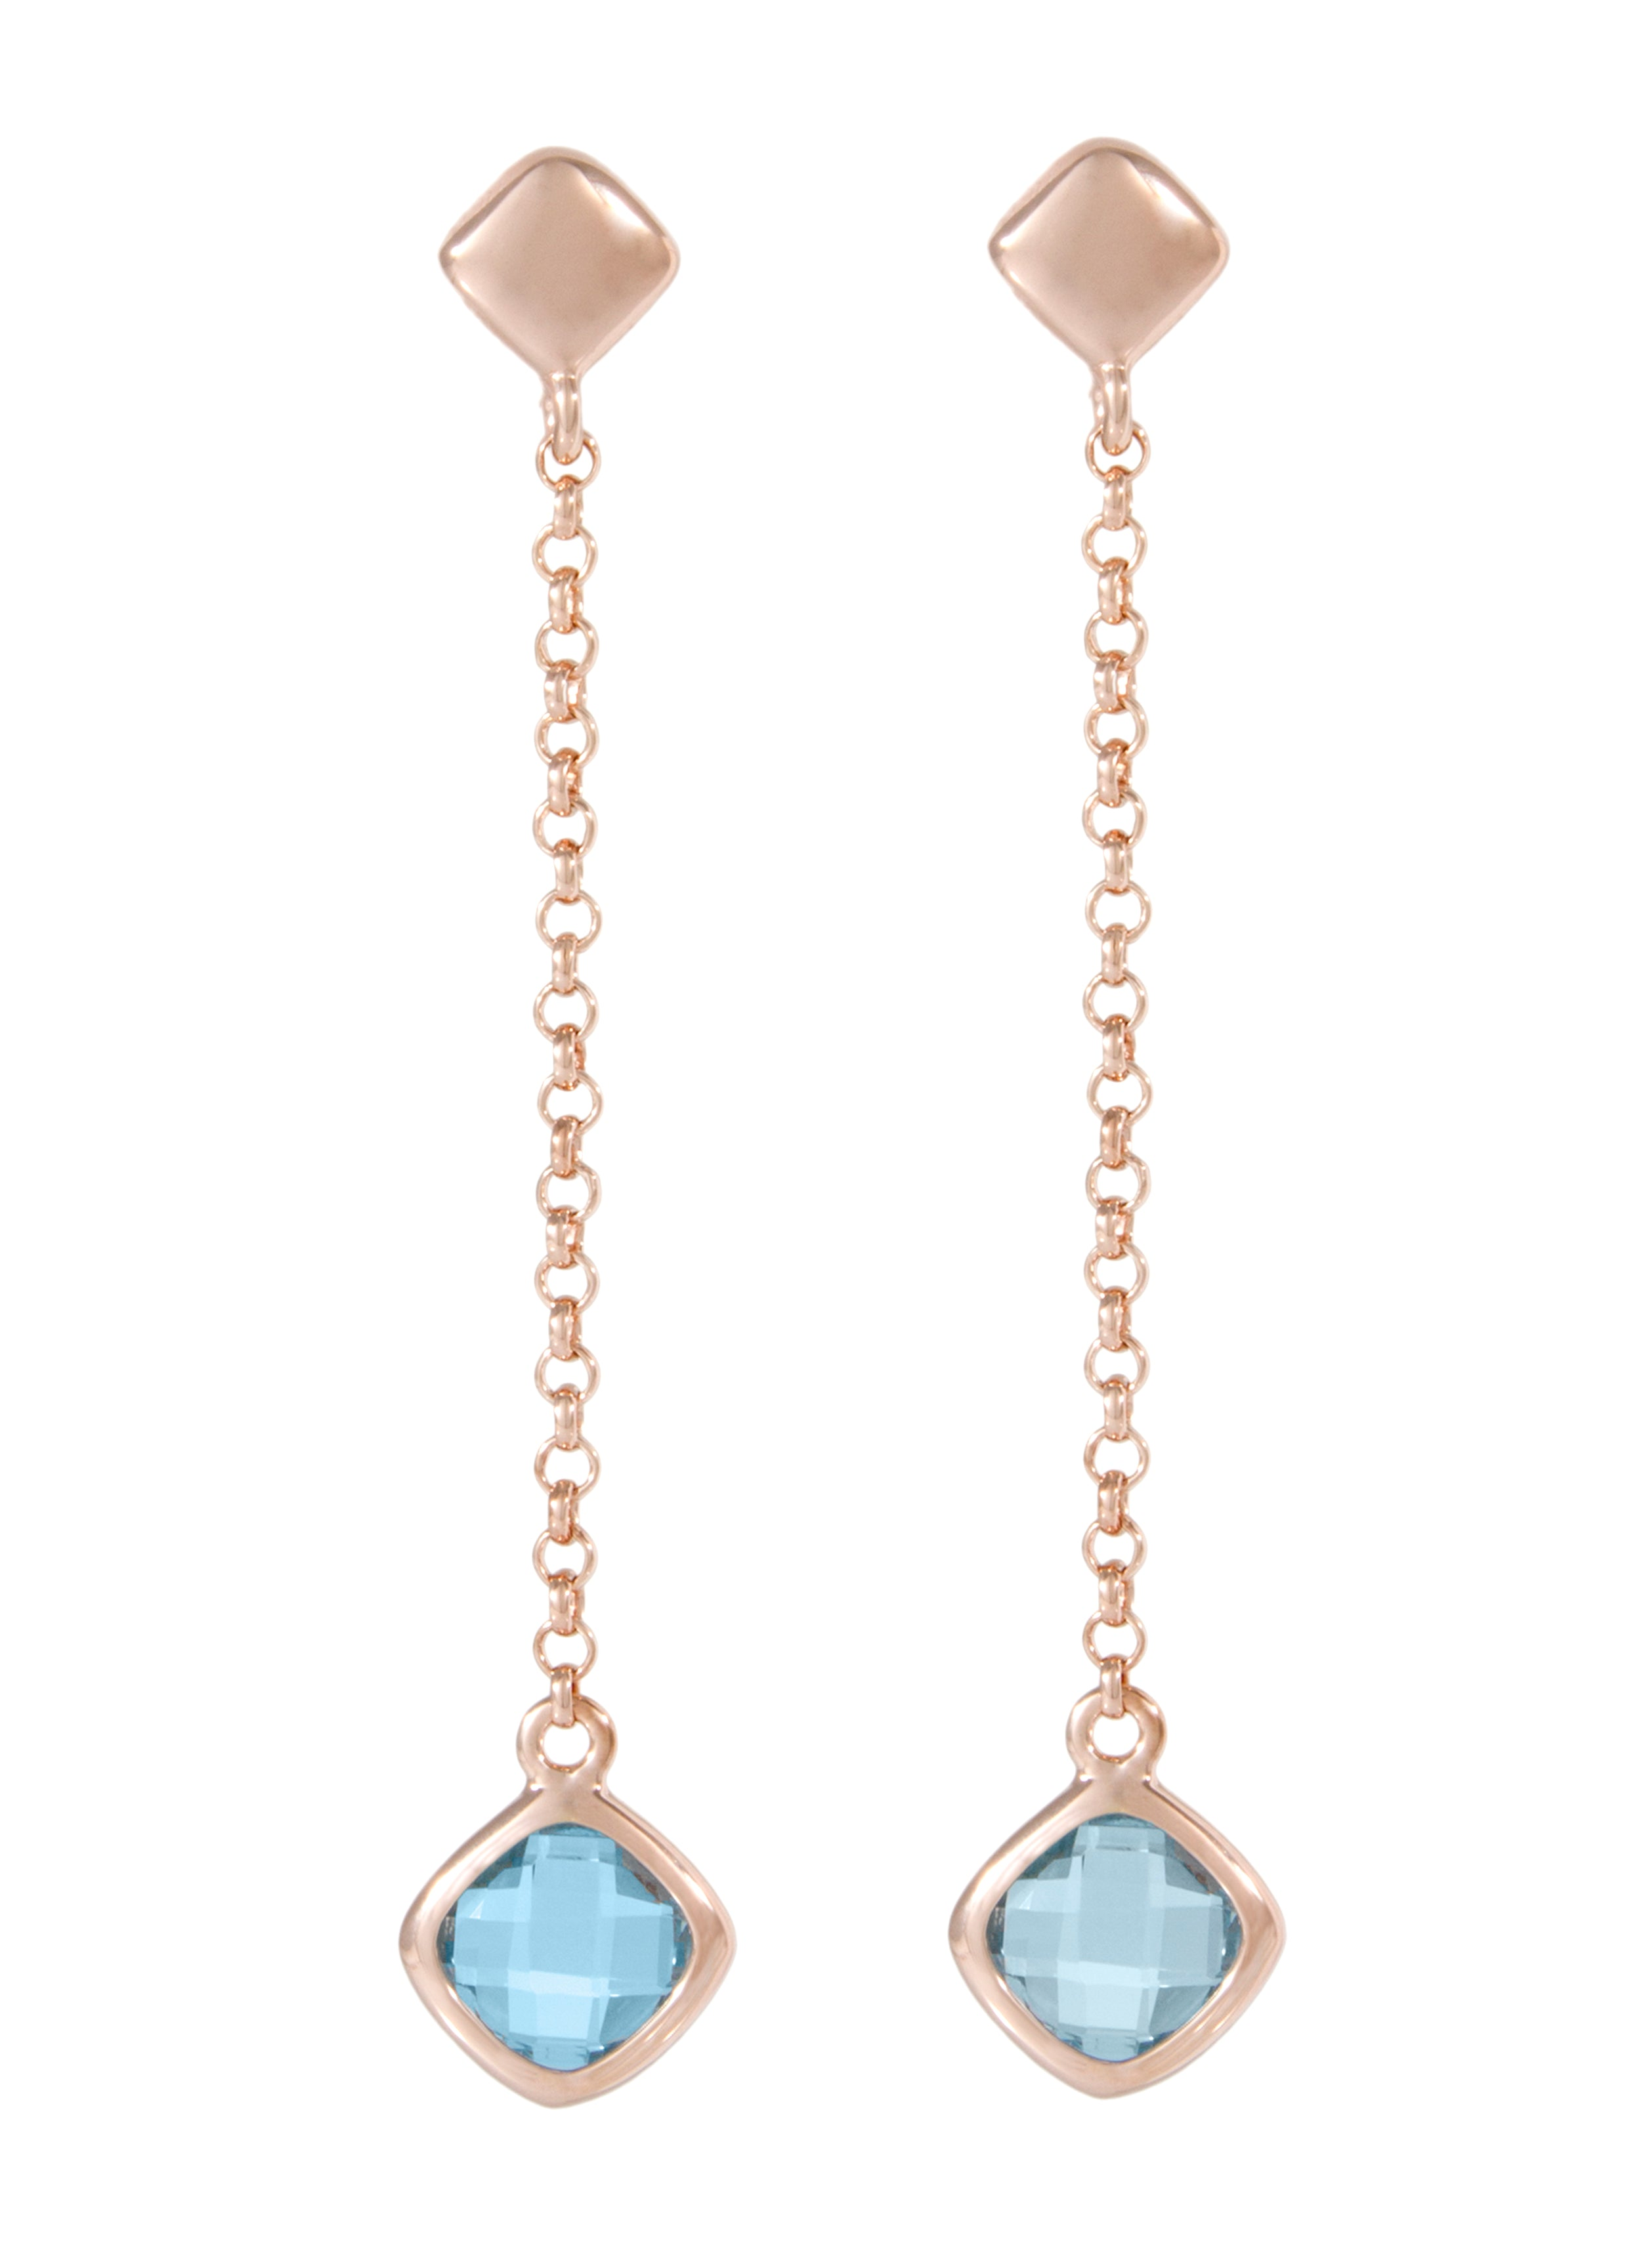 Forever Last 18k Gold Plated Women's Blue Topaz  Earring